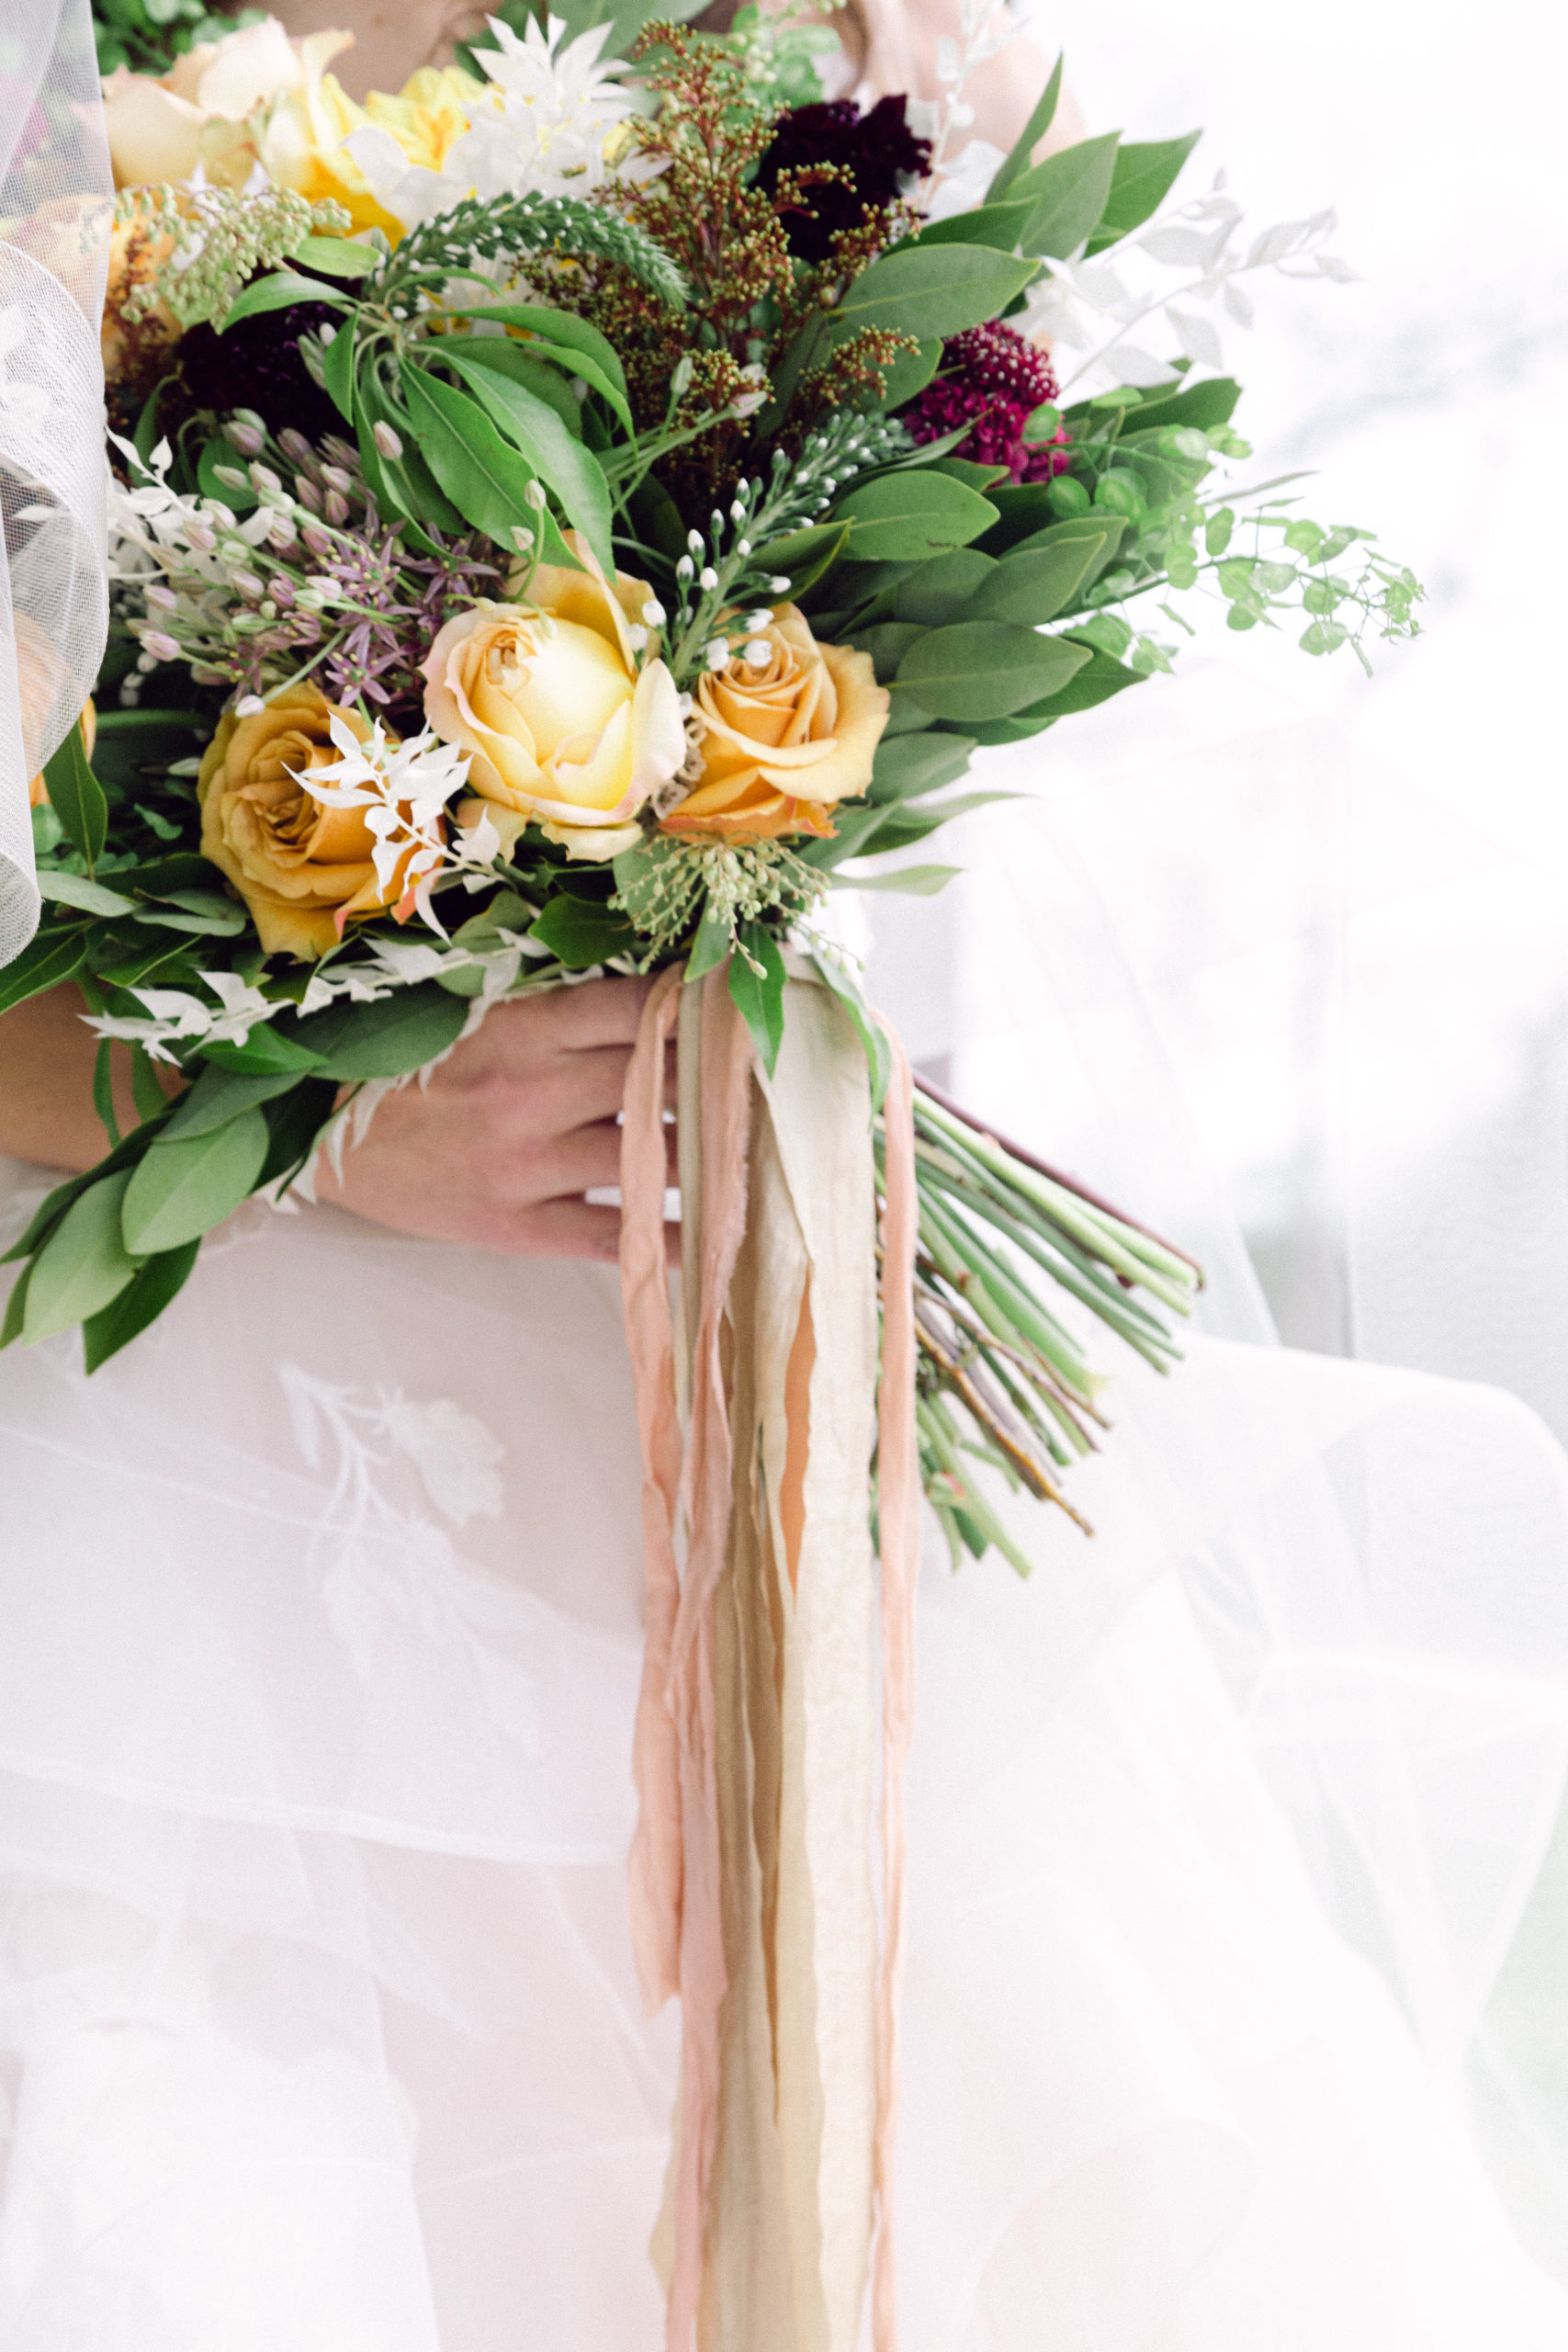 a bouquet of greens and yellows and whites is held by the bride at an angle